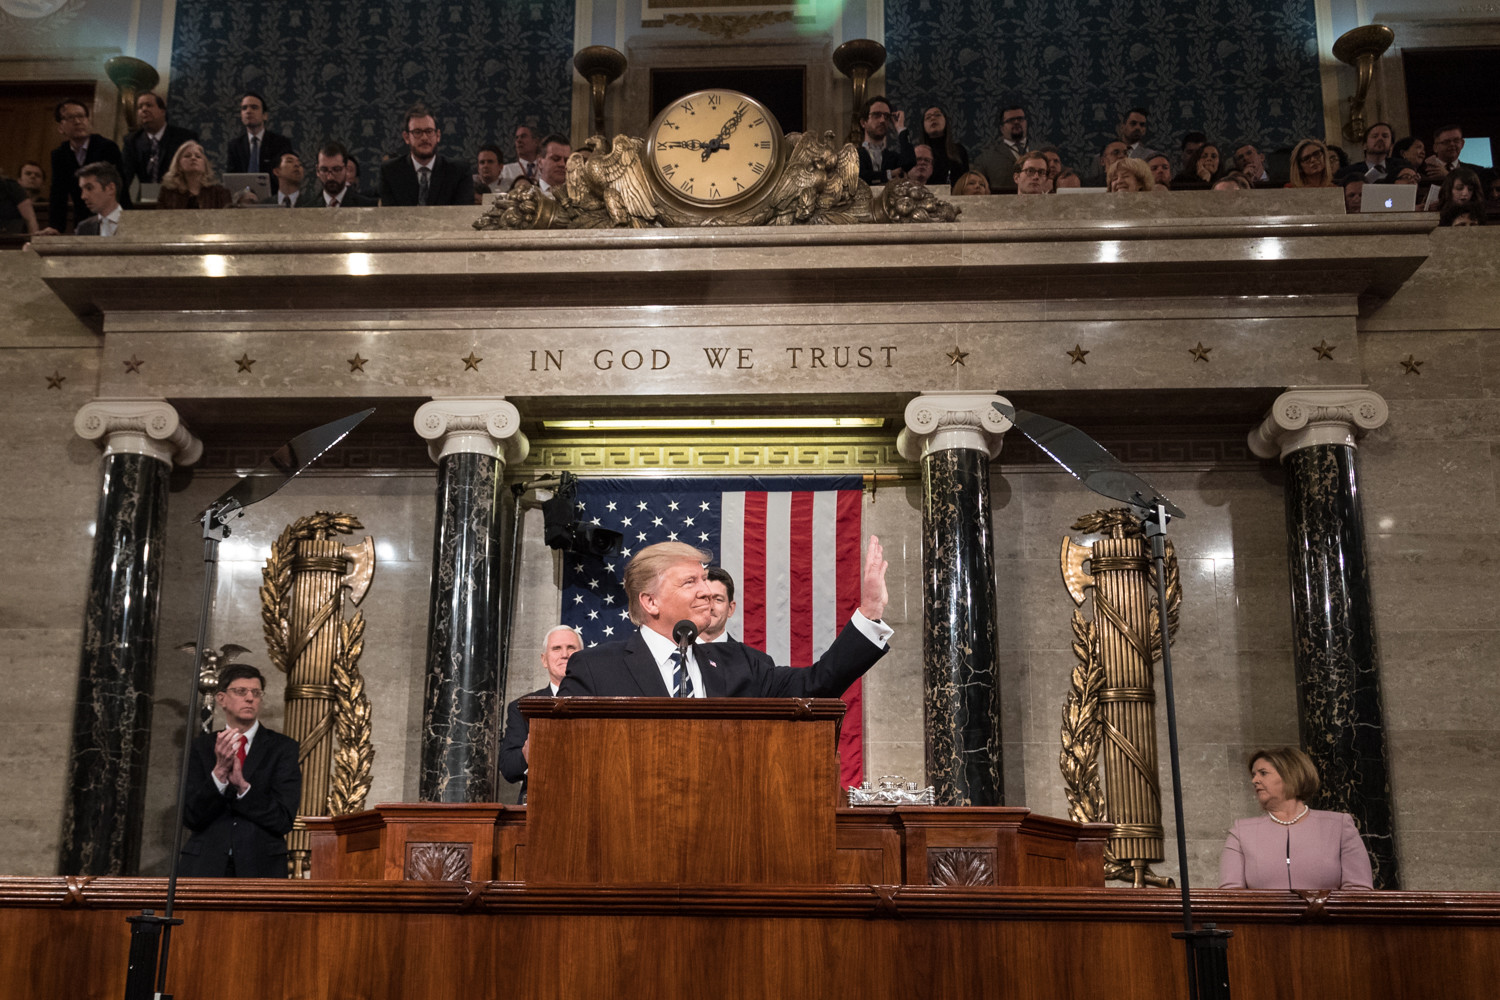 President Donald Trump delivers the Address to Congress on Tuesday, February 28, 2017, at the U.S. Capitol.  This is the President's first Address to Congress of his presidency.